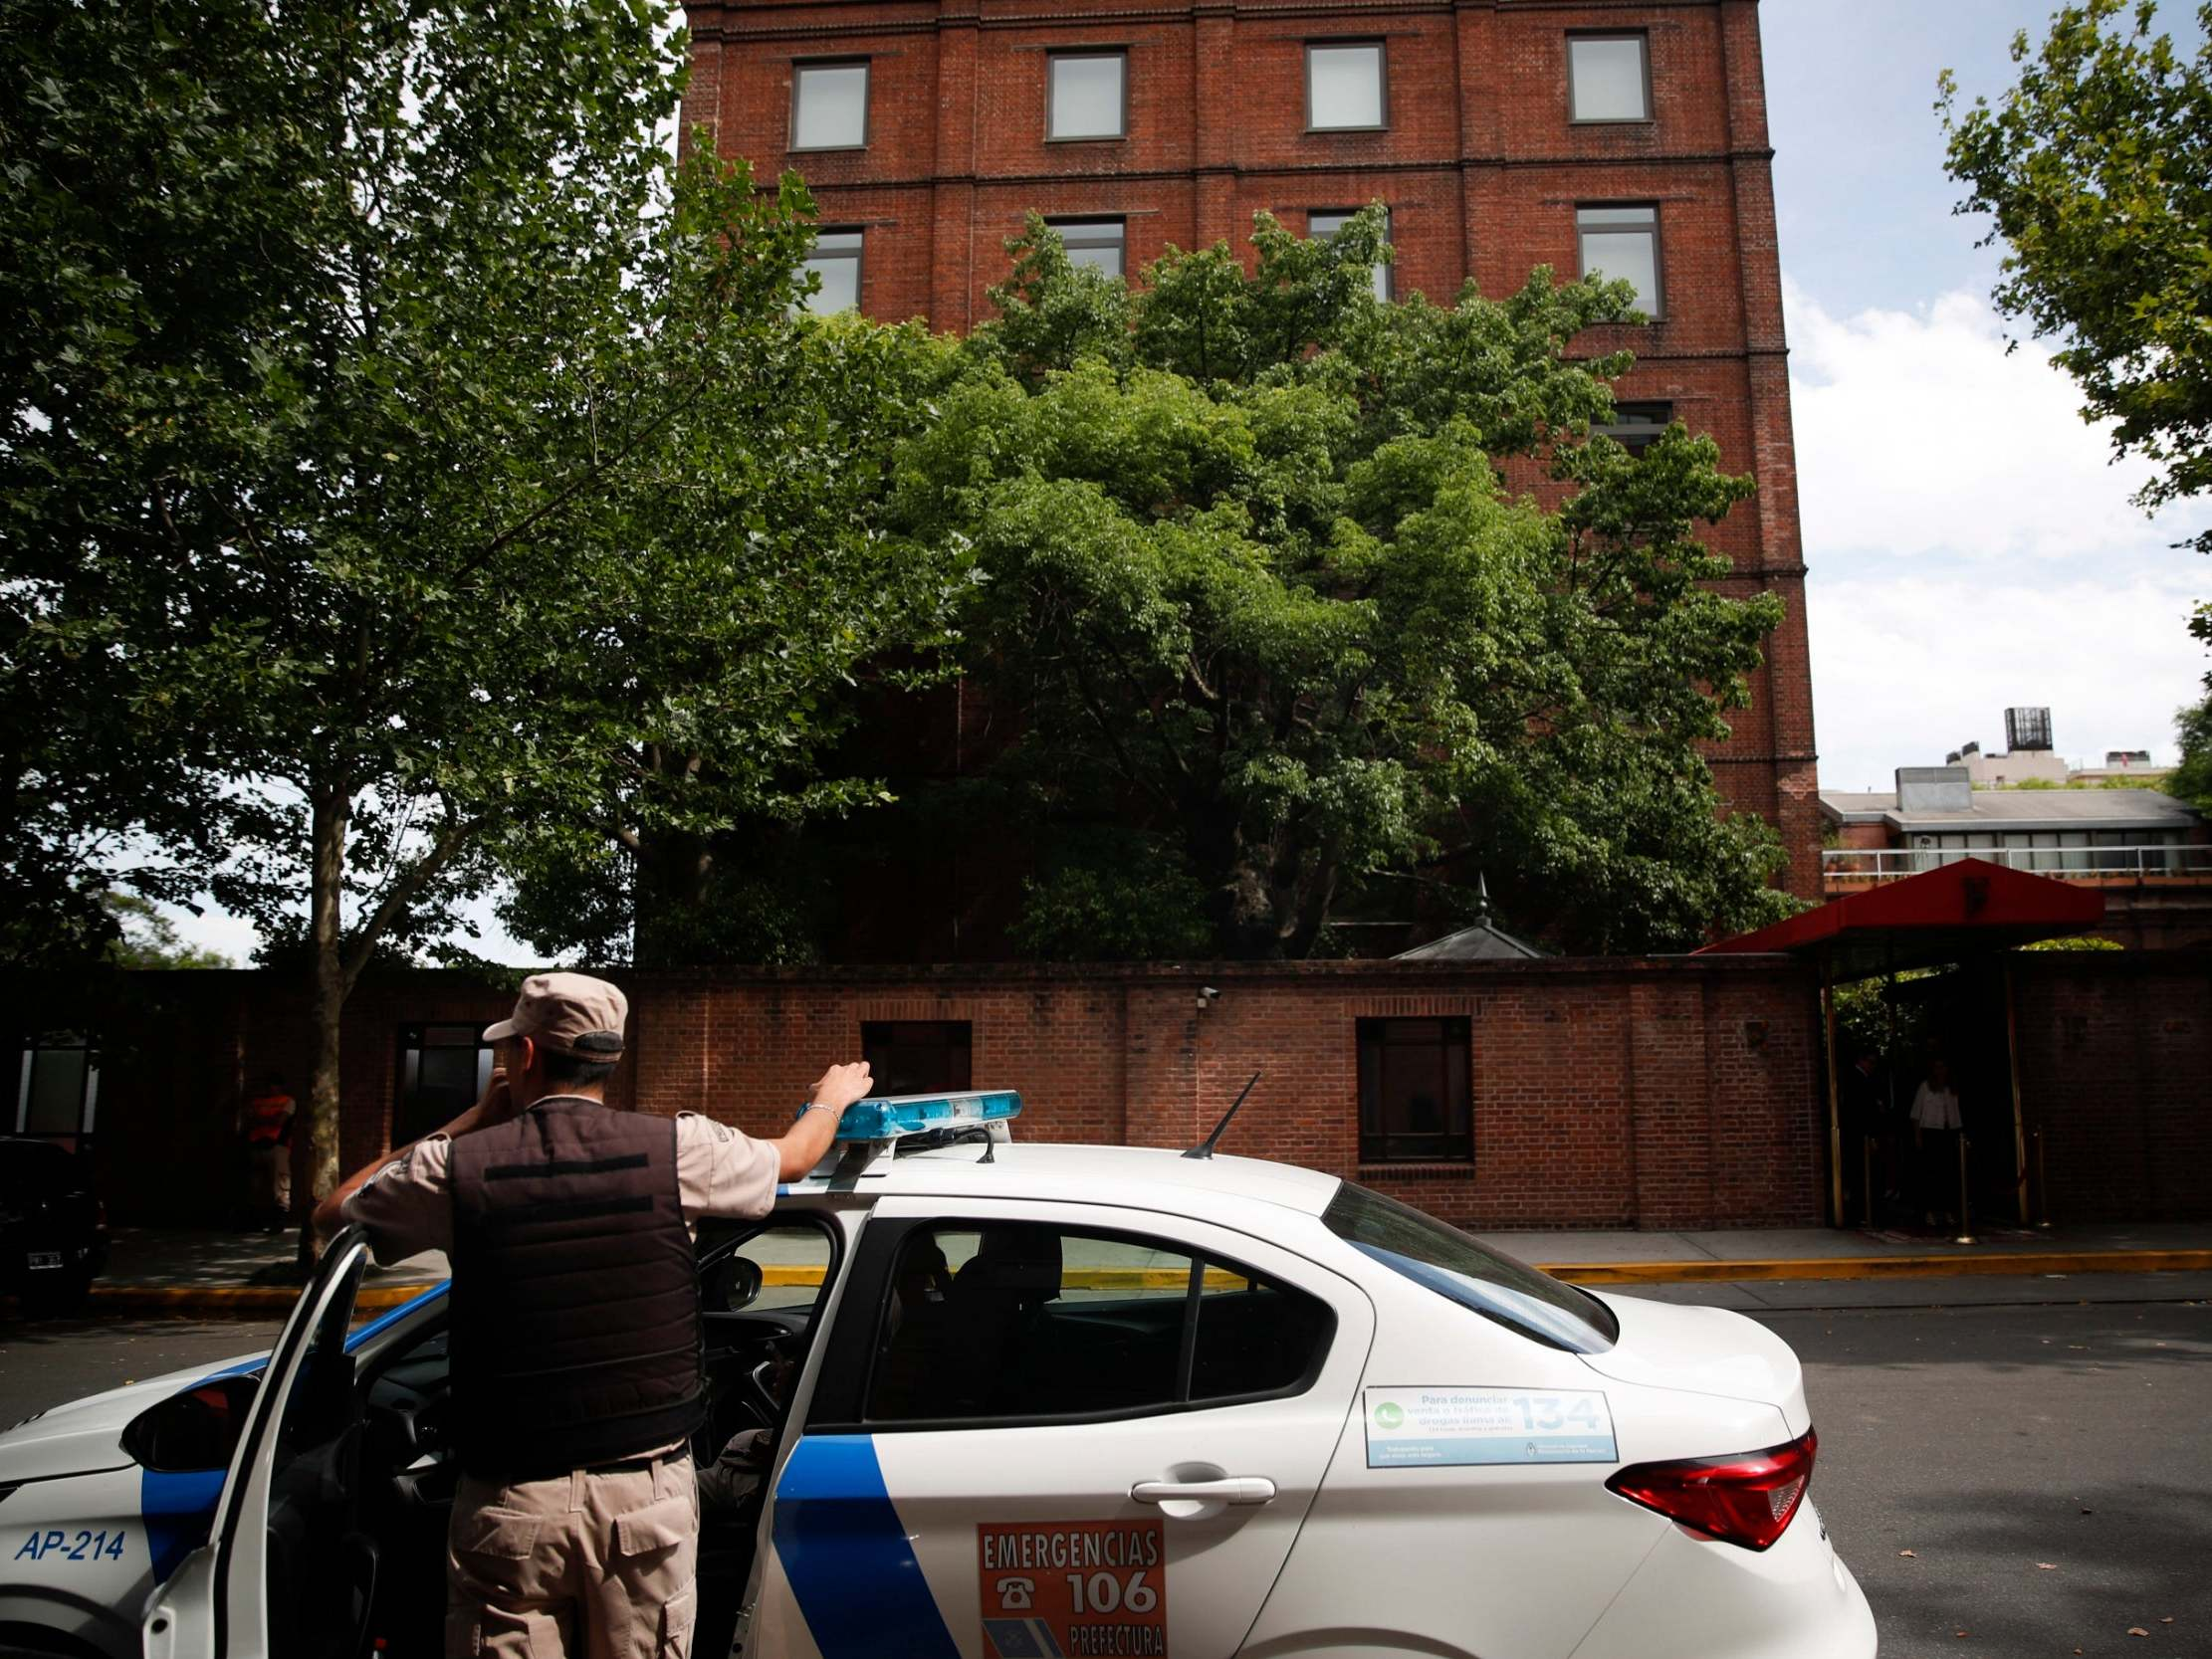 Argentina: British tourist 'shot dead in front of son' in daylight robbery